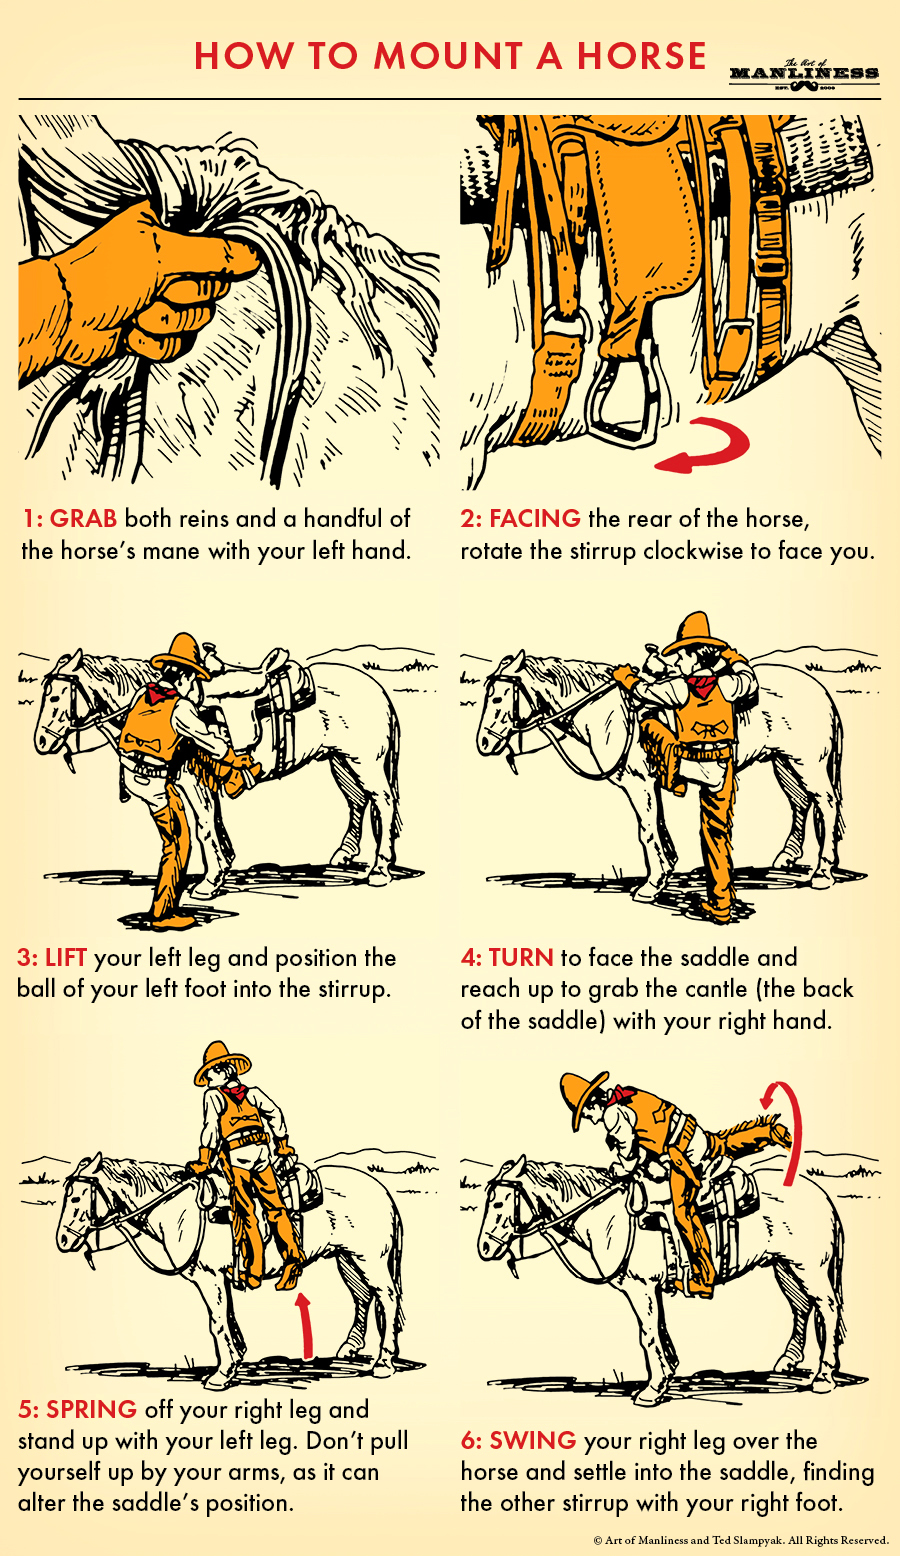 how to mount a horse illustration